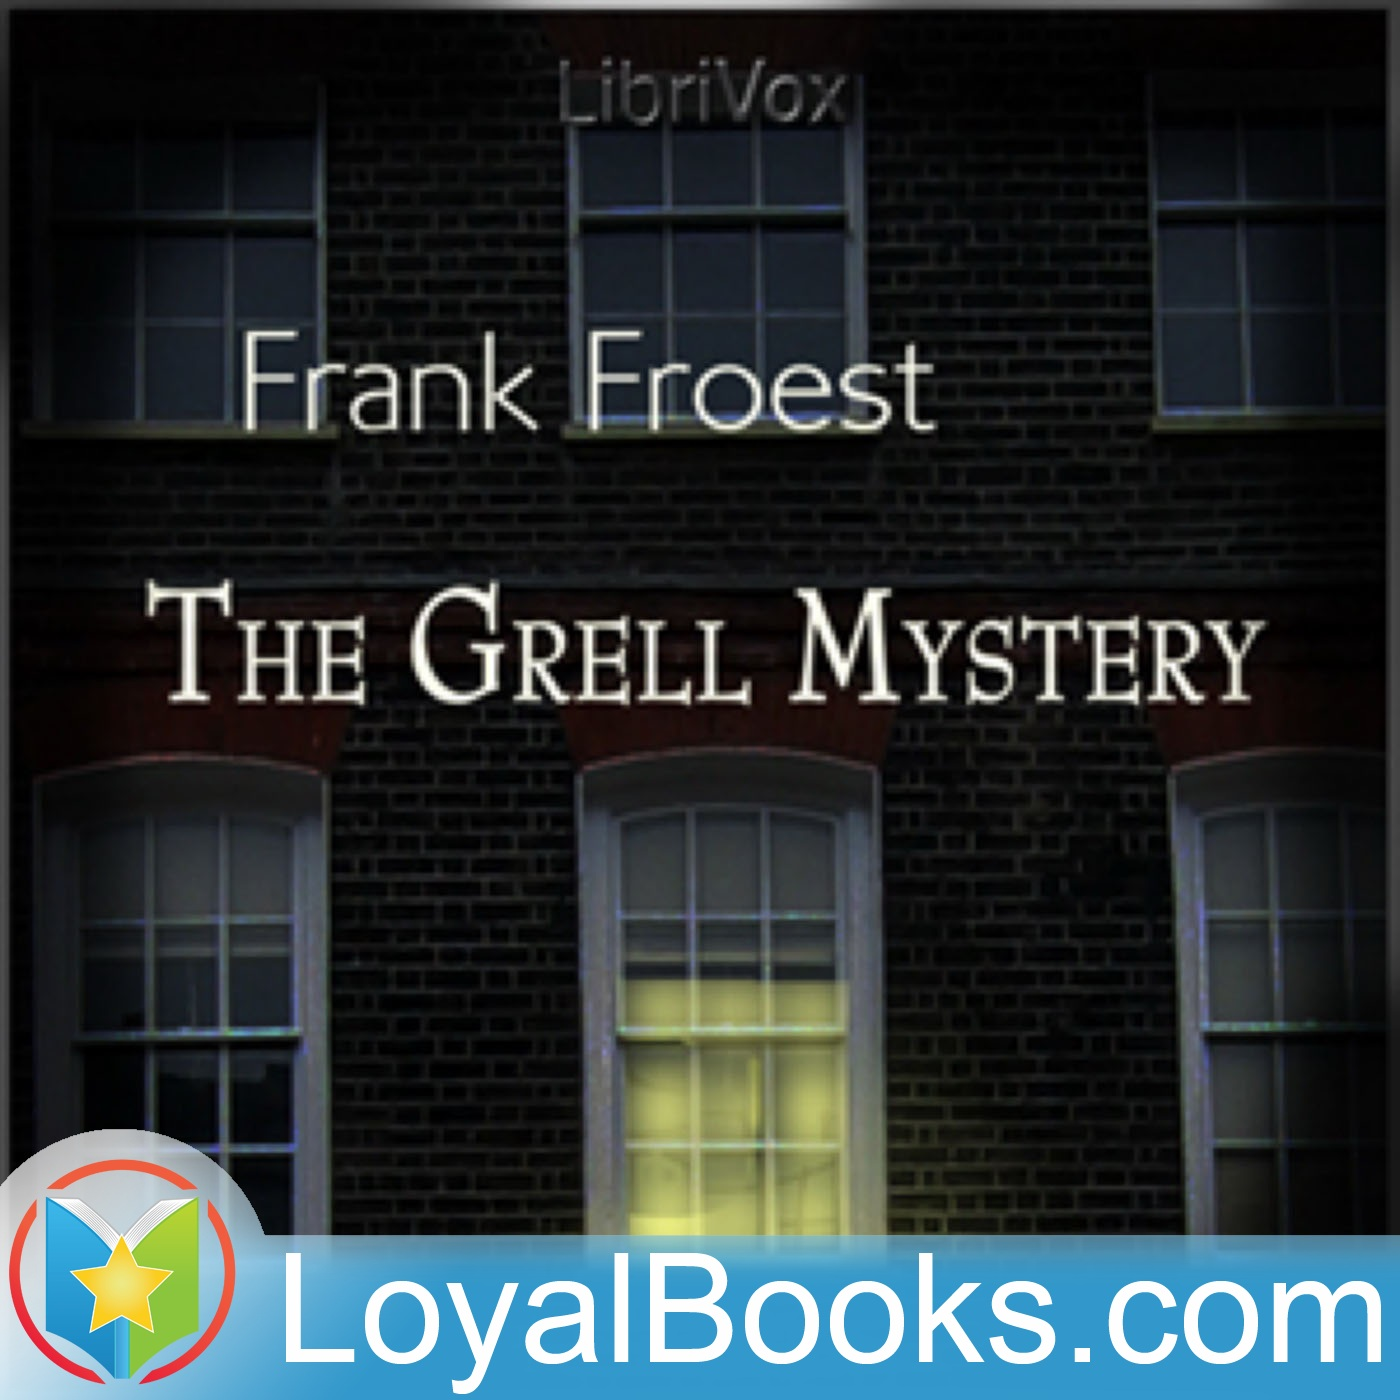 <![CDATA[The Grell Mystery by Frank Froest]]>